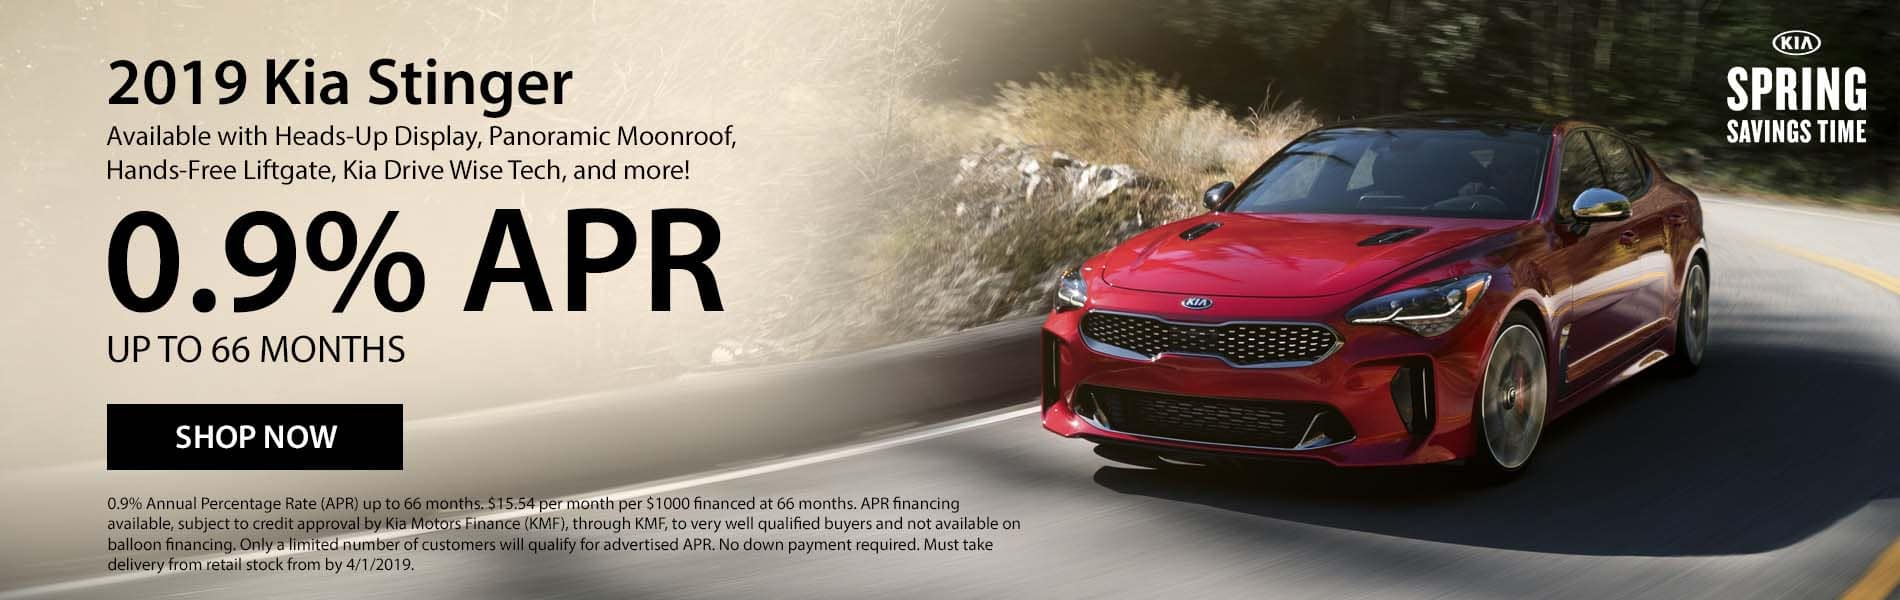 Get .9% APR up to 66 months on a new 2019 Kia Stinger